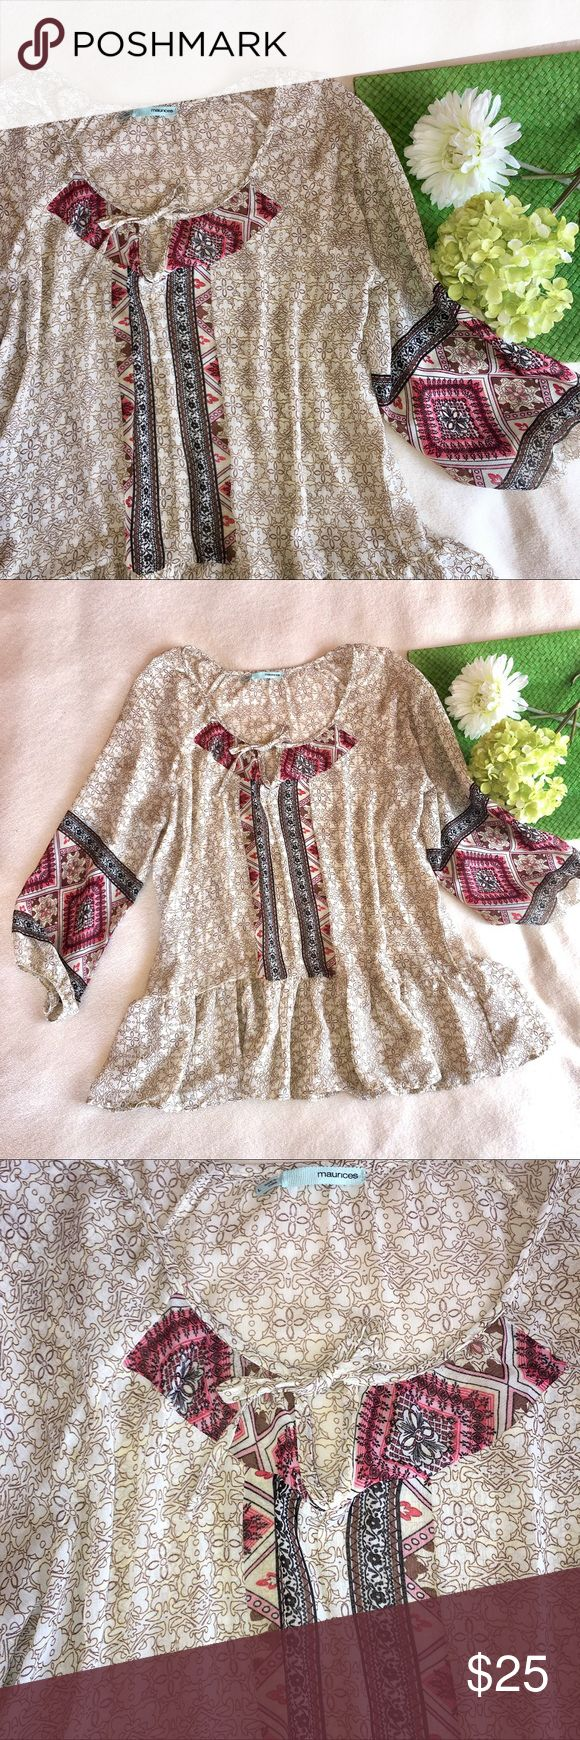 """Boho flowy chiffon Aztec blouse [FESTIVAL WEAR] Length: 28"""" 